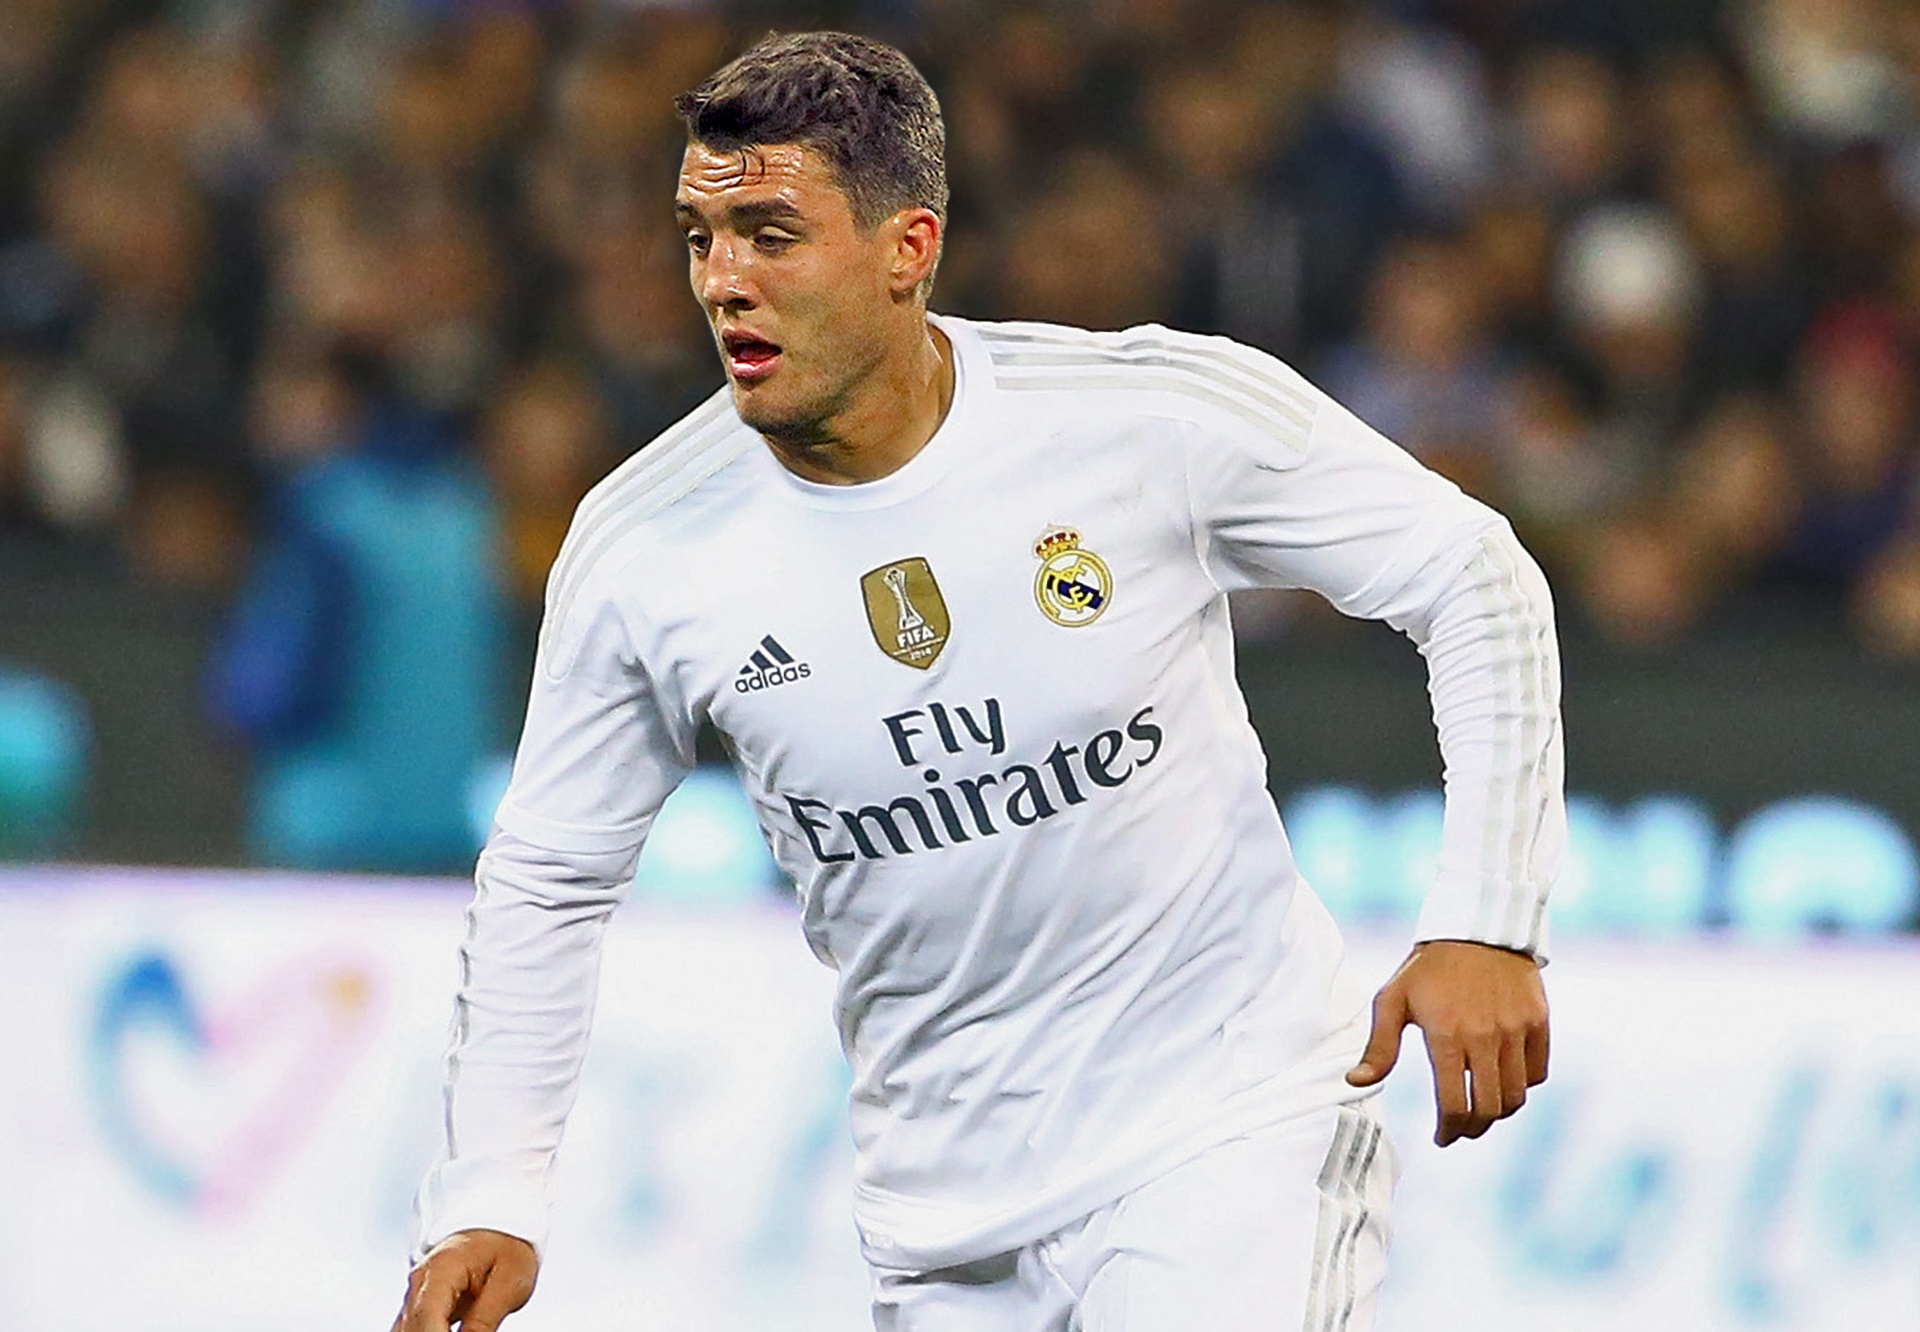 kovacic-real-madrid_3ld7jtl6b5uv16x441dv94d8f